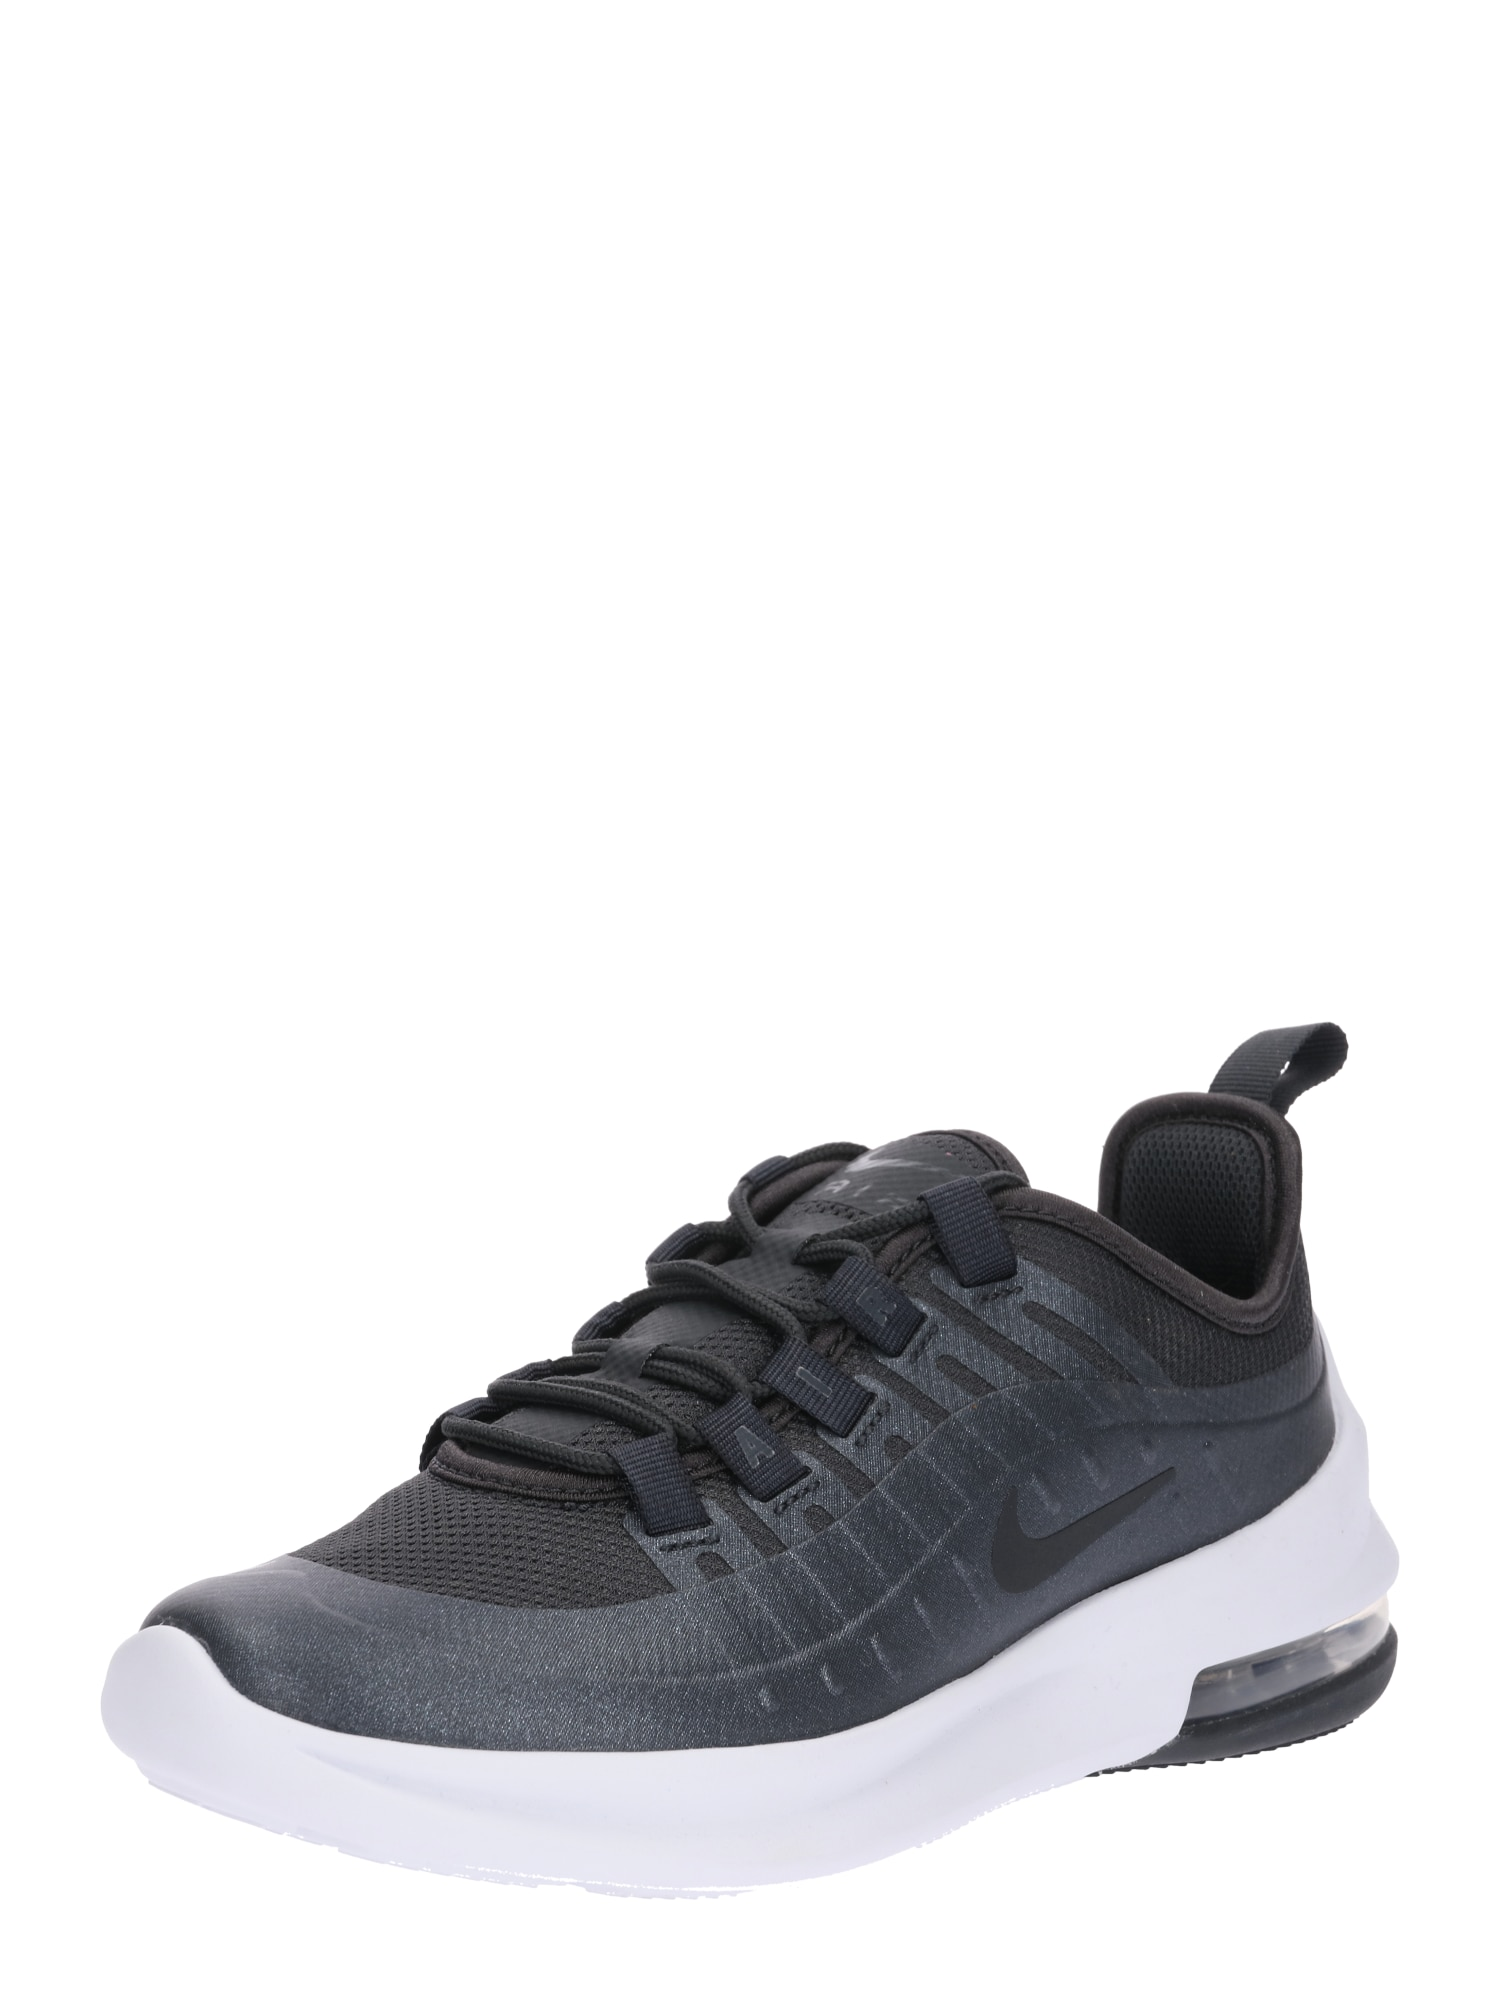 Nike Sportswear, Jongens Sneakers 'Air Max Axis', antraciet / wit